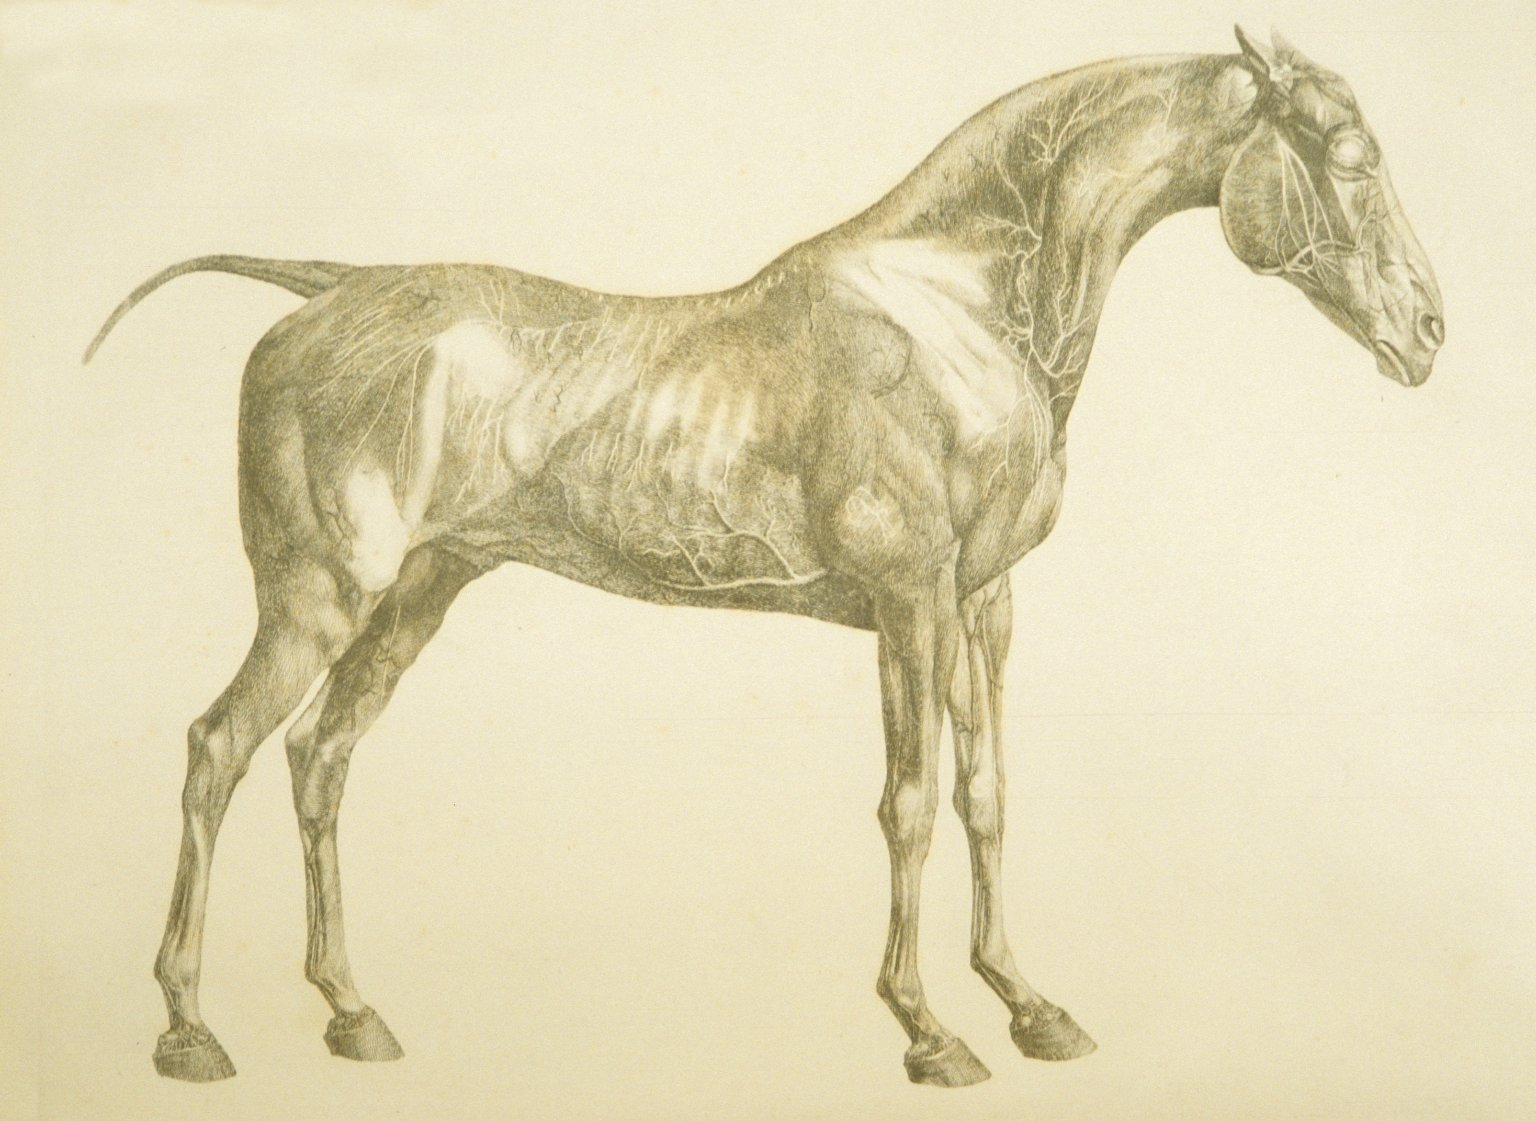 George Stubbs The Anatomy Of The Horse Gallery - human anatomy ...